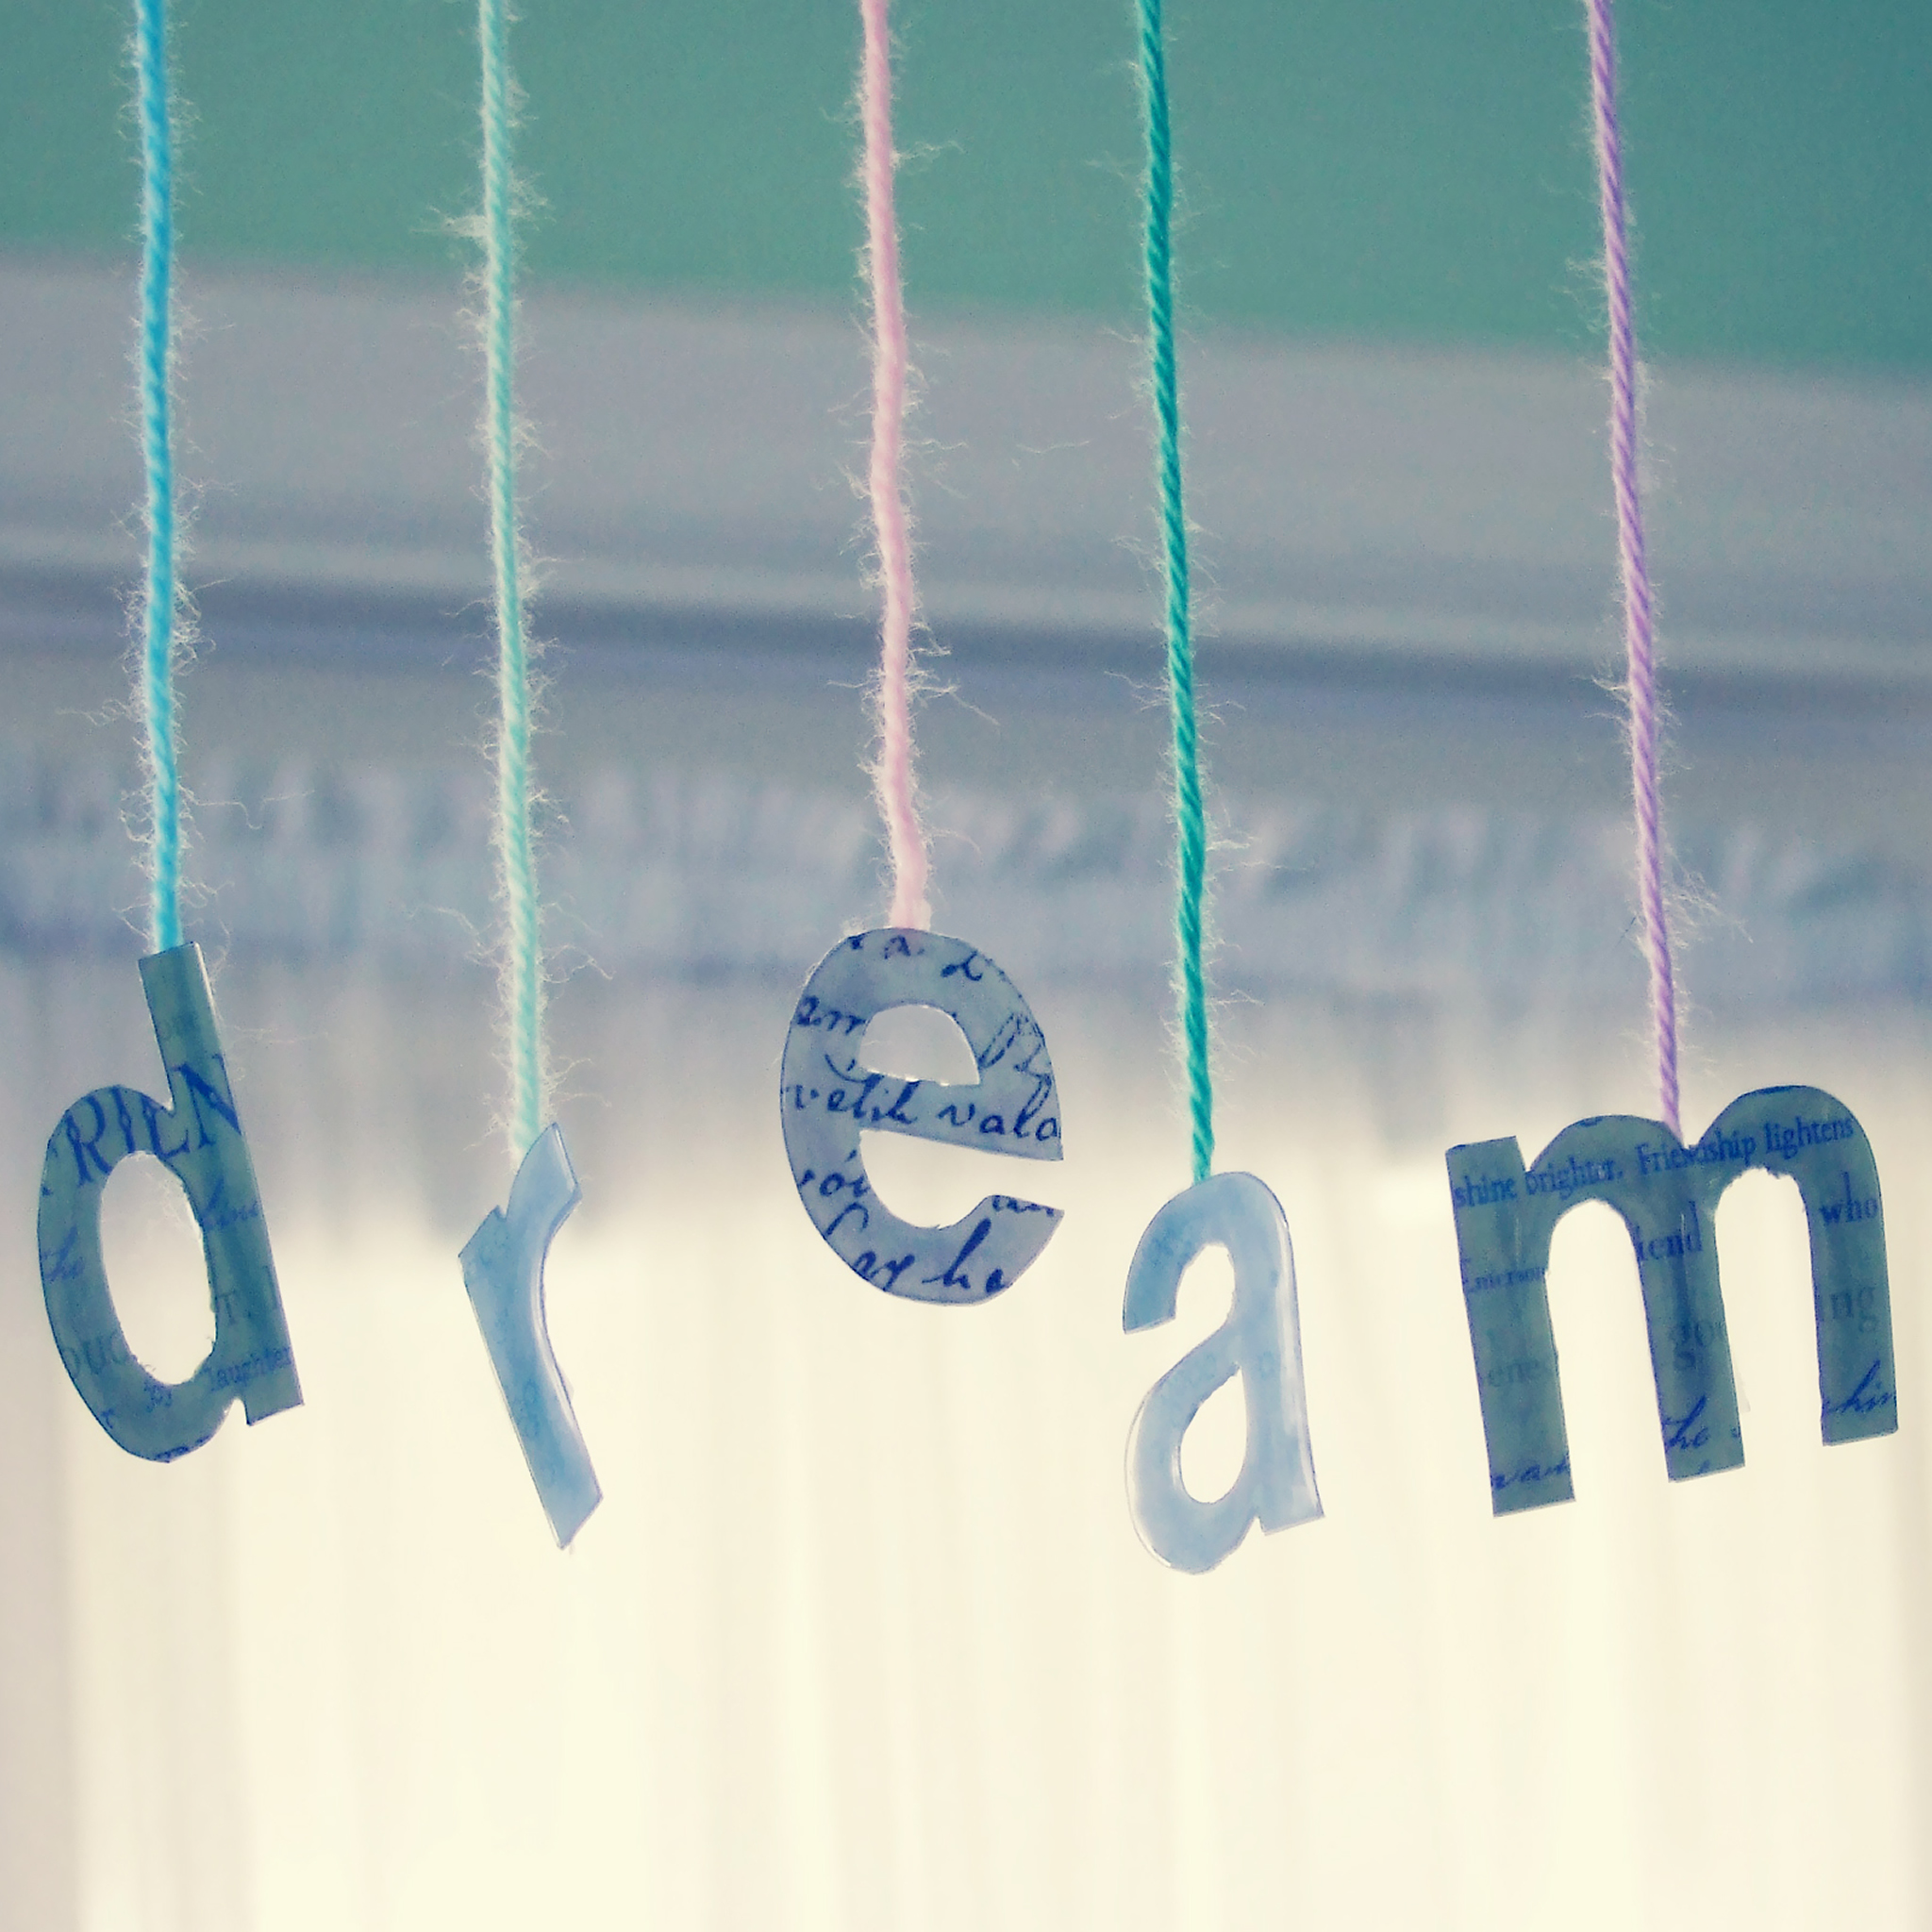 Dream-iPad-4-wallpaper-ilikewallpaper_com